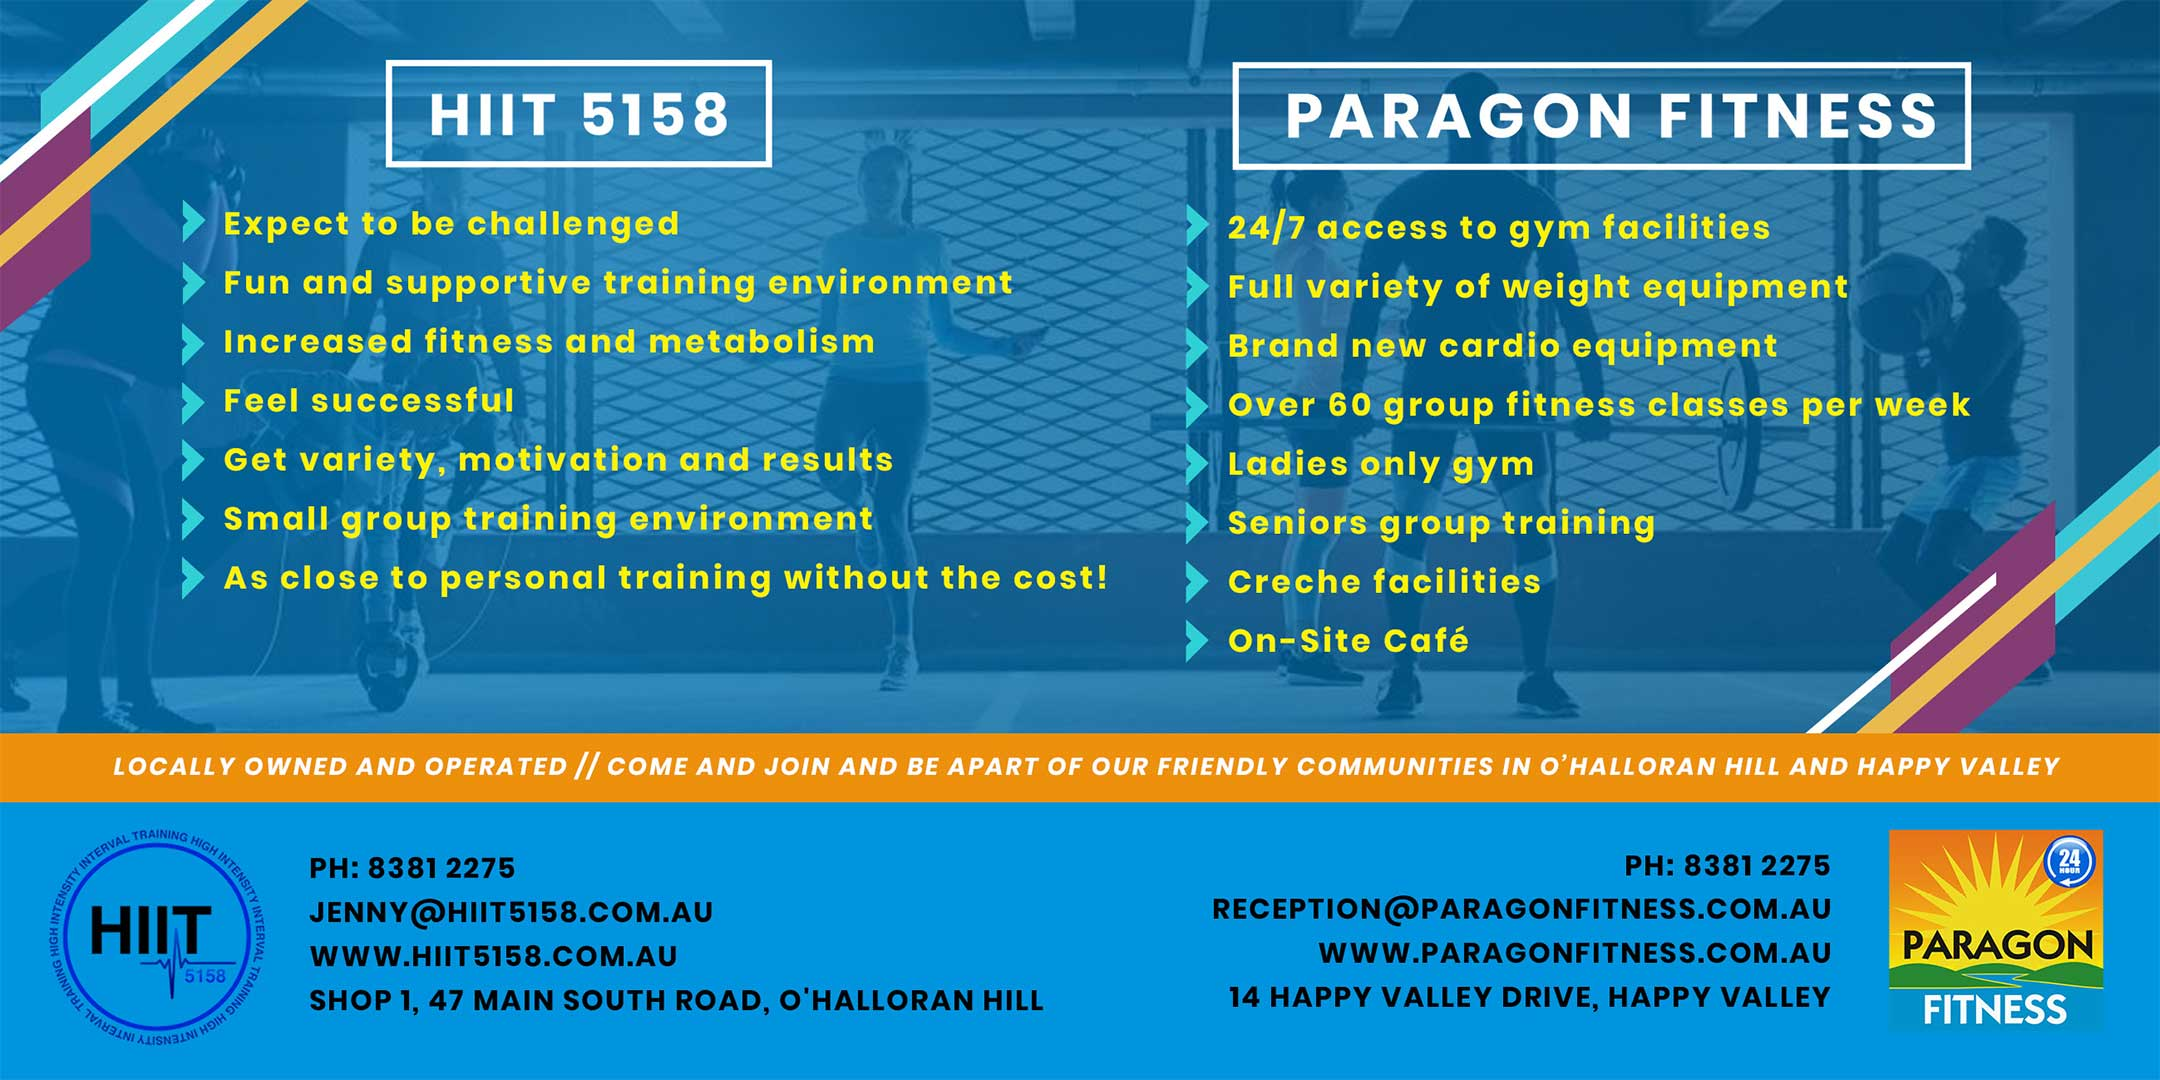 Paragon Fitness Centre - Happy Valley - 24 hour gym with creche